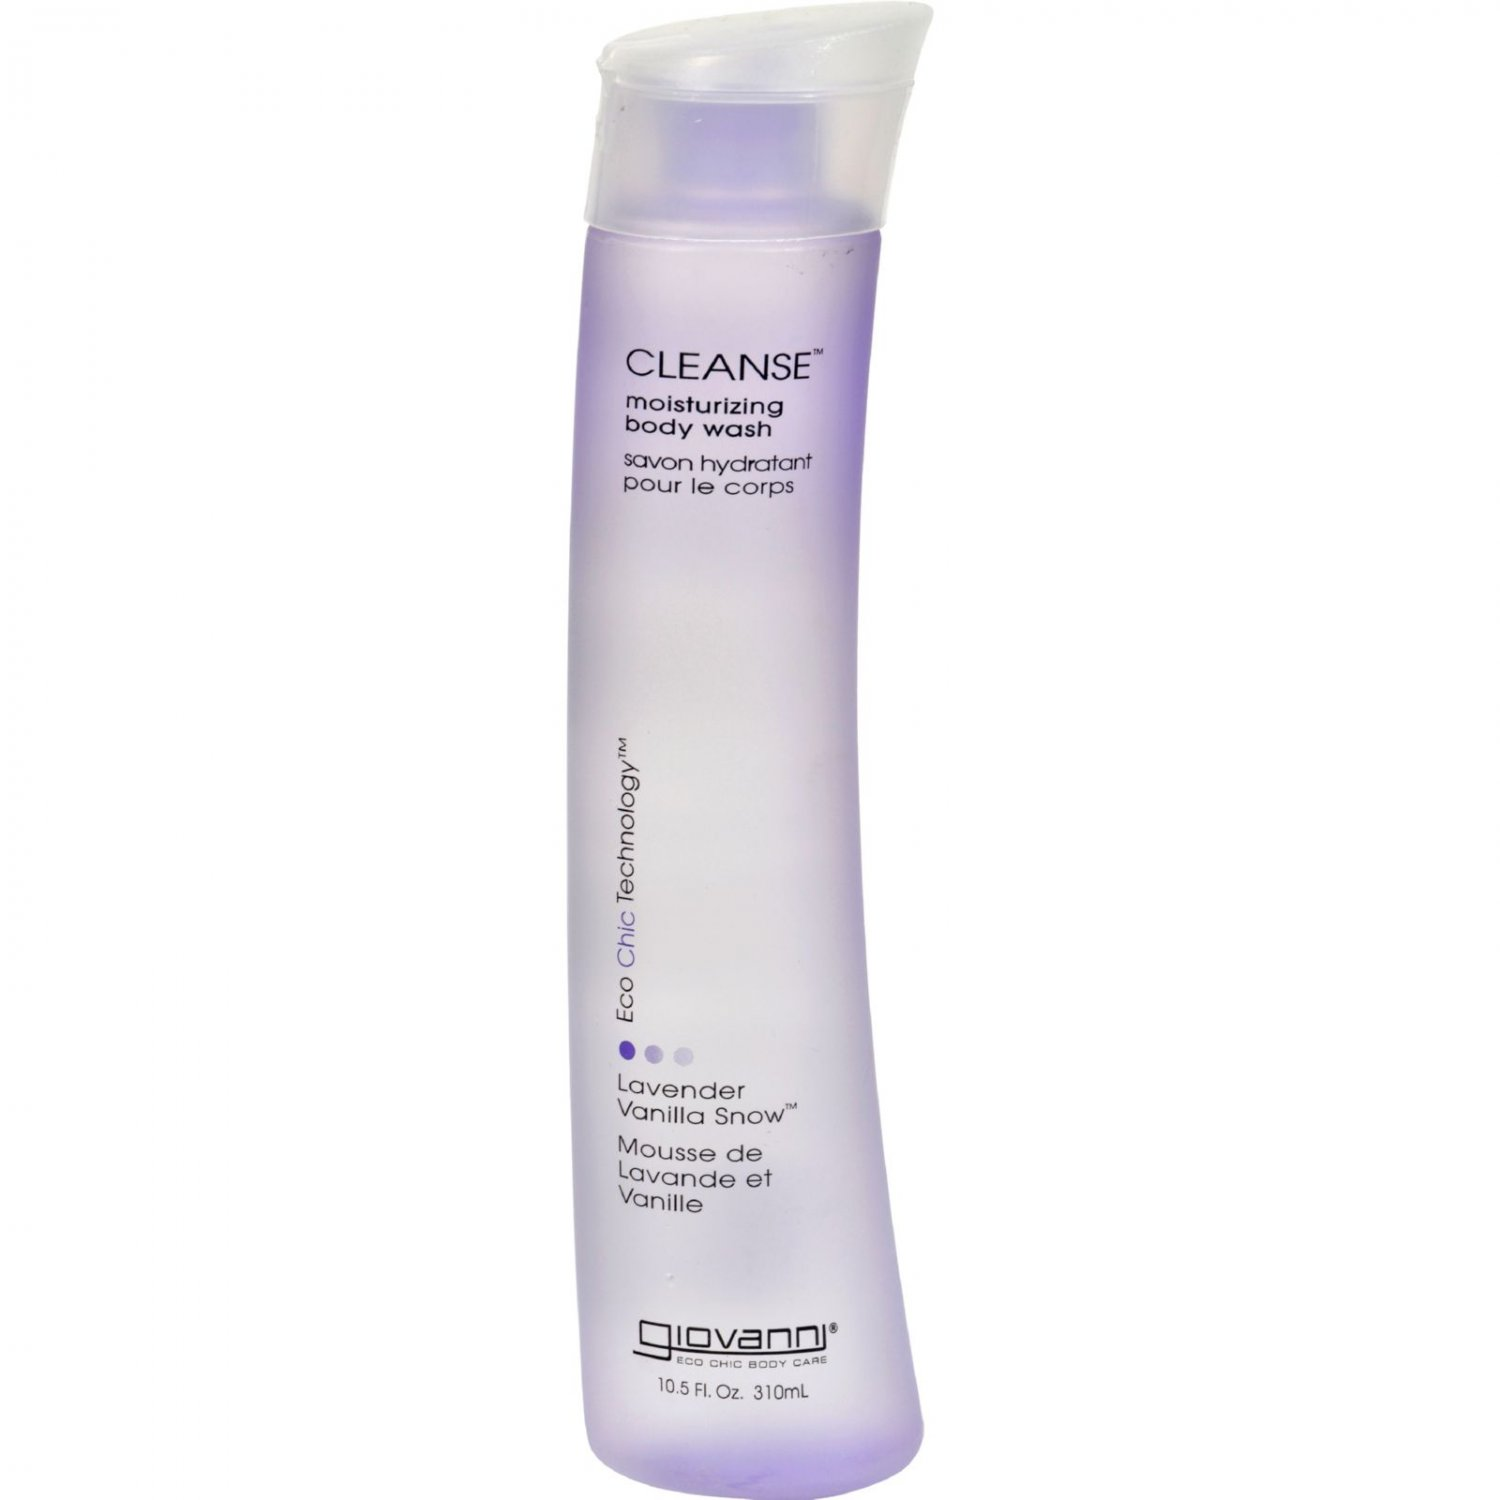 Giovanni Cleanse Body Wash Lavender Vanilla Snow - 10.5 fl oz